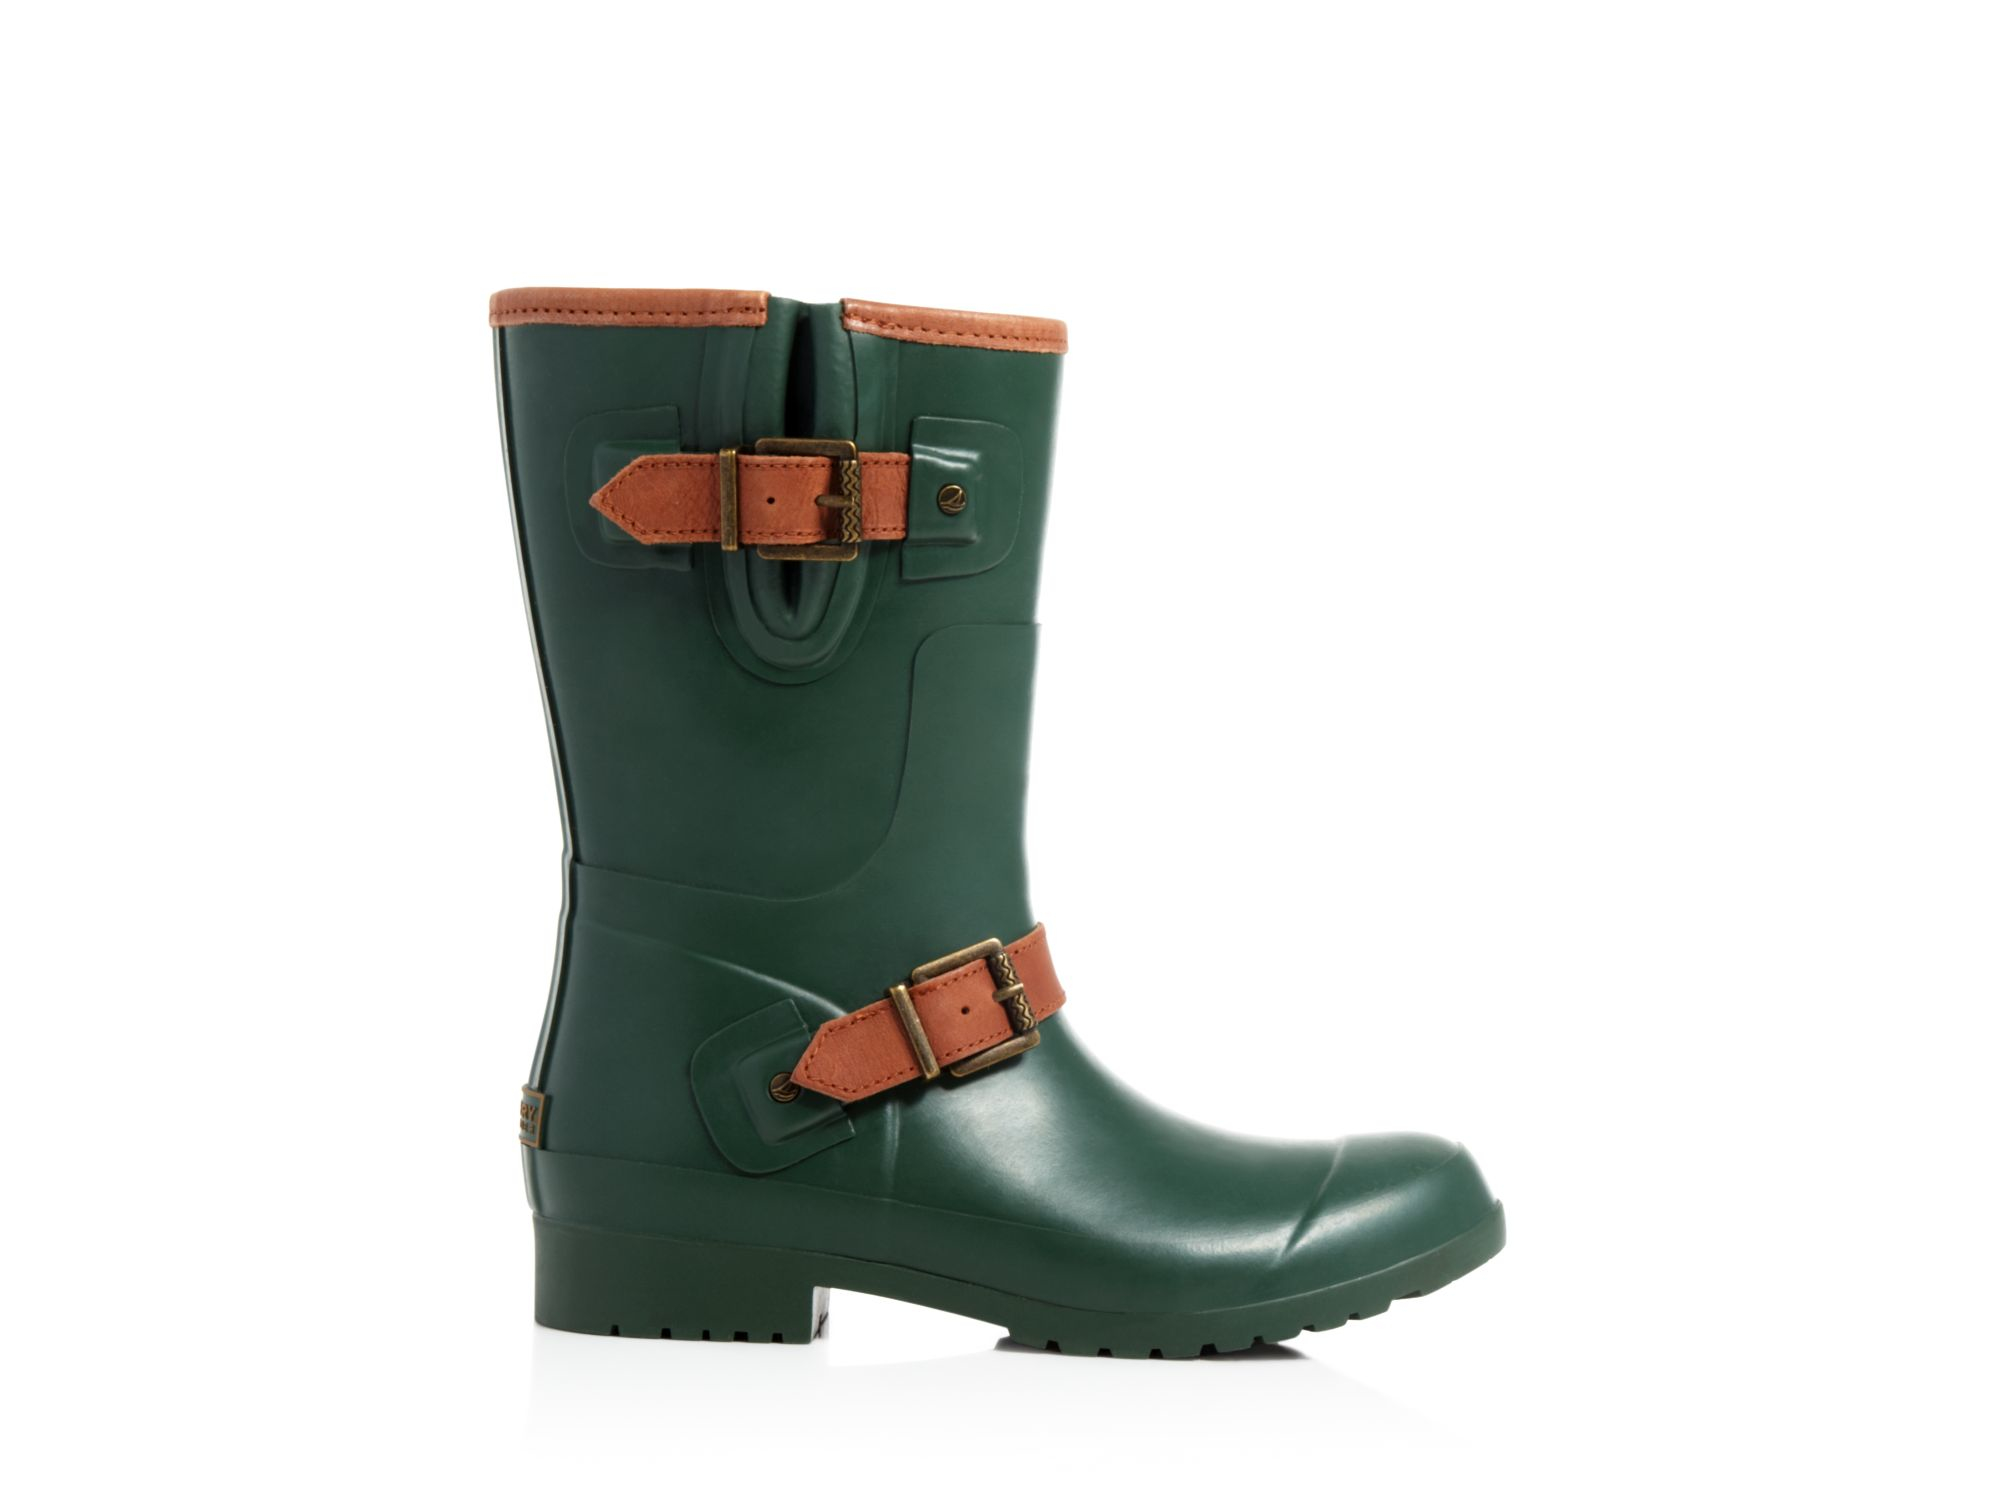 Sperry top-sider Walker Fog Buckled Rain Boots in Green | Lyst